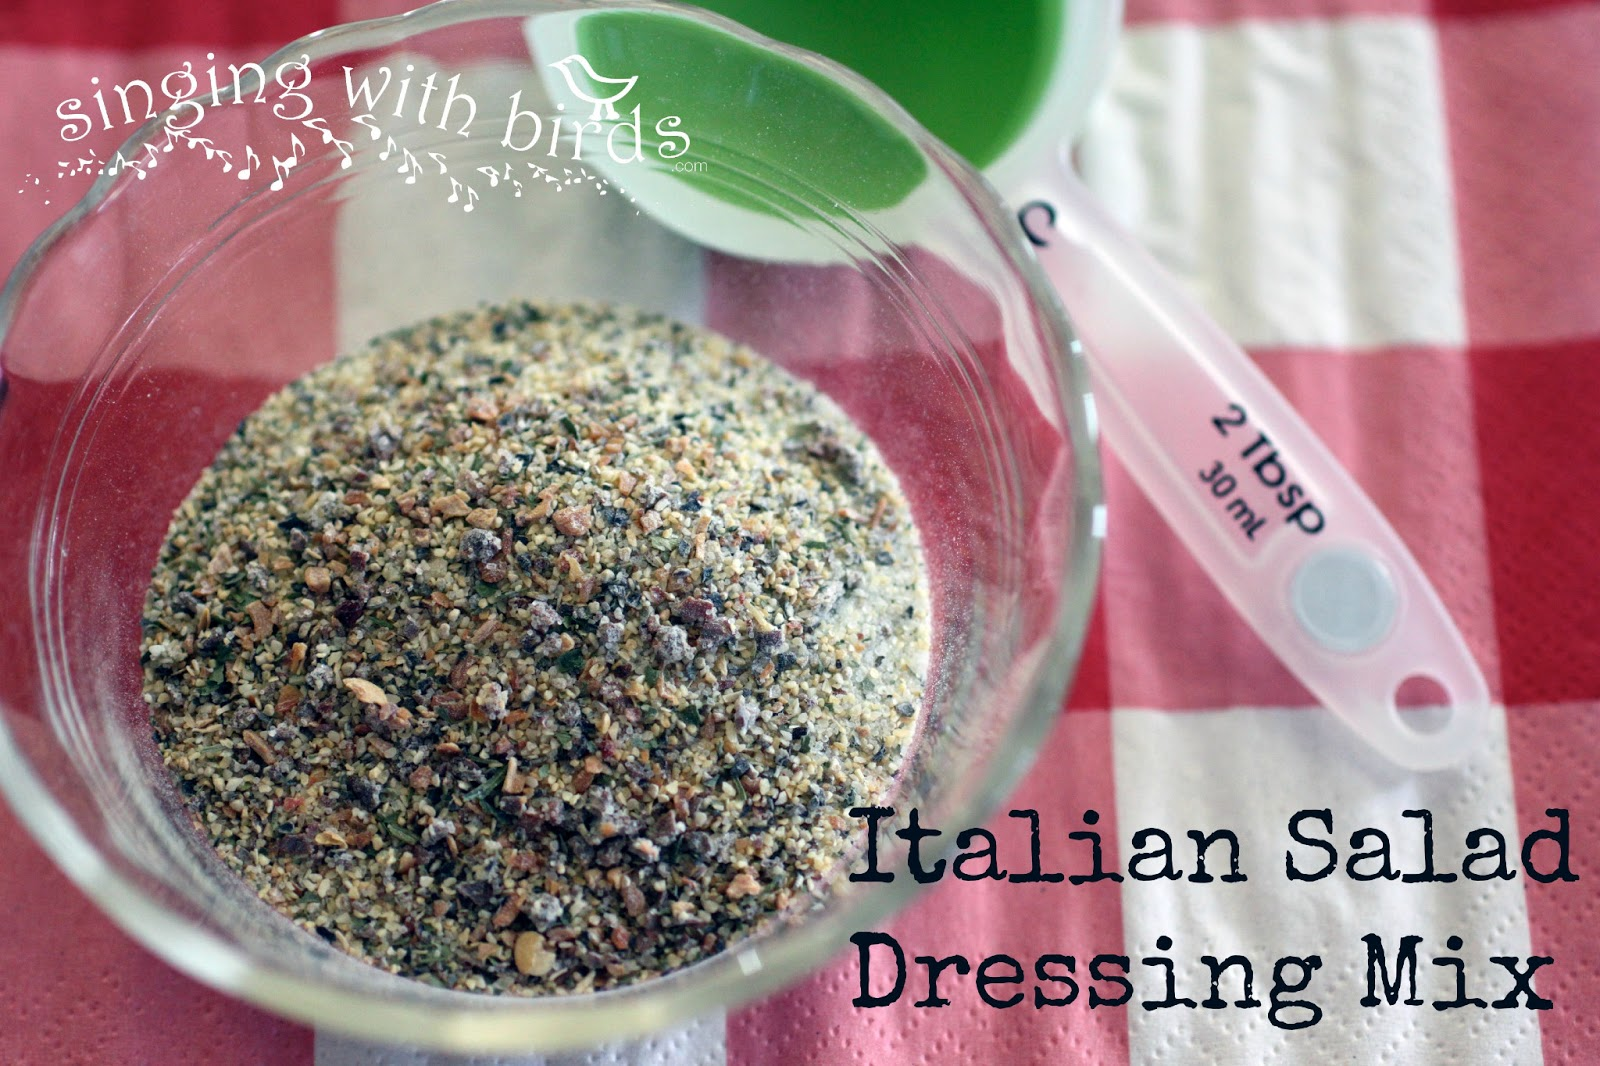 Italian Dressing Mix Recipes — Dishmaps